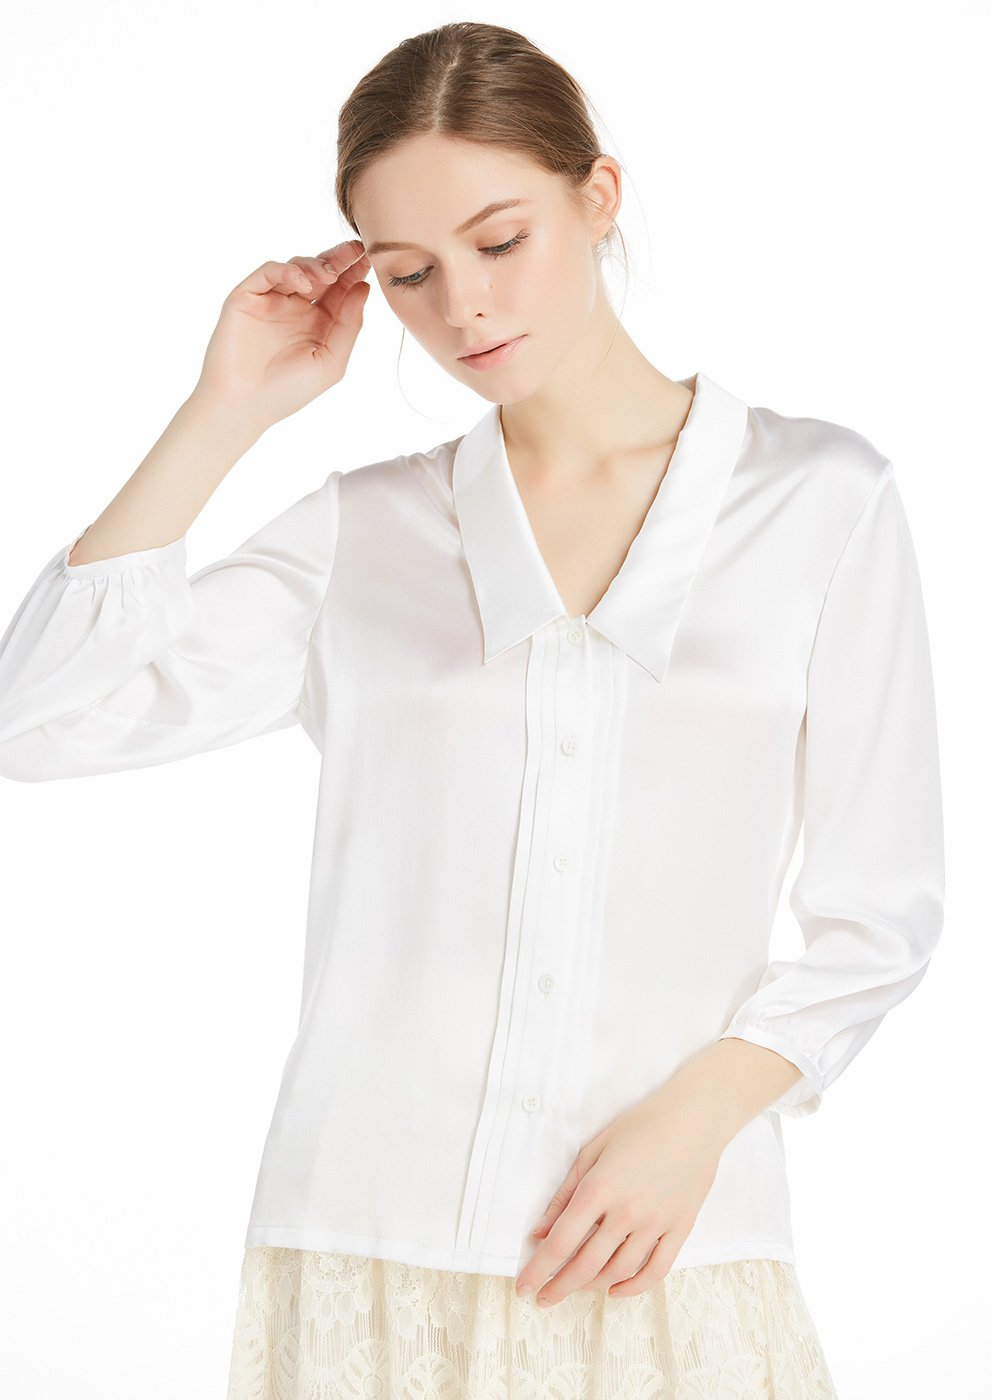 LilySilk Women's Charmeuse Silk Blouse Deep V Neck Top 22 Momme Soft Work Ladies Shirt White 14-16/XL